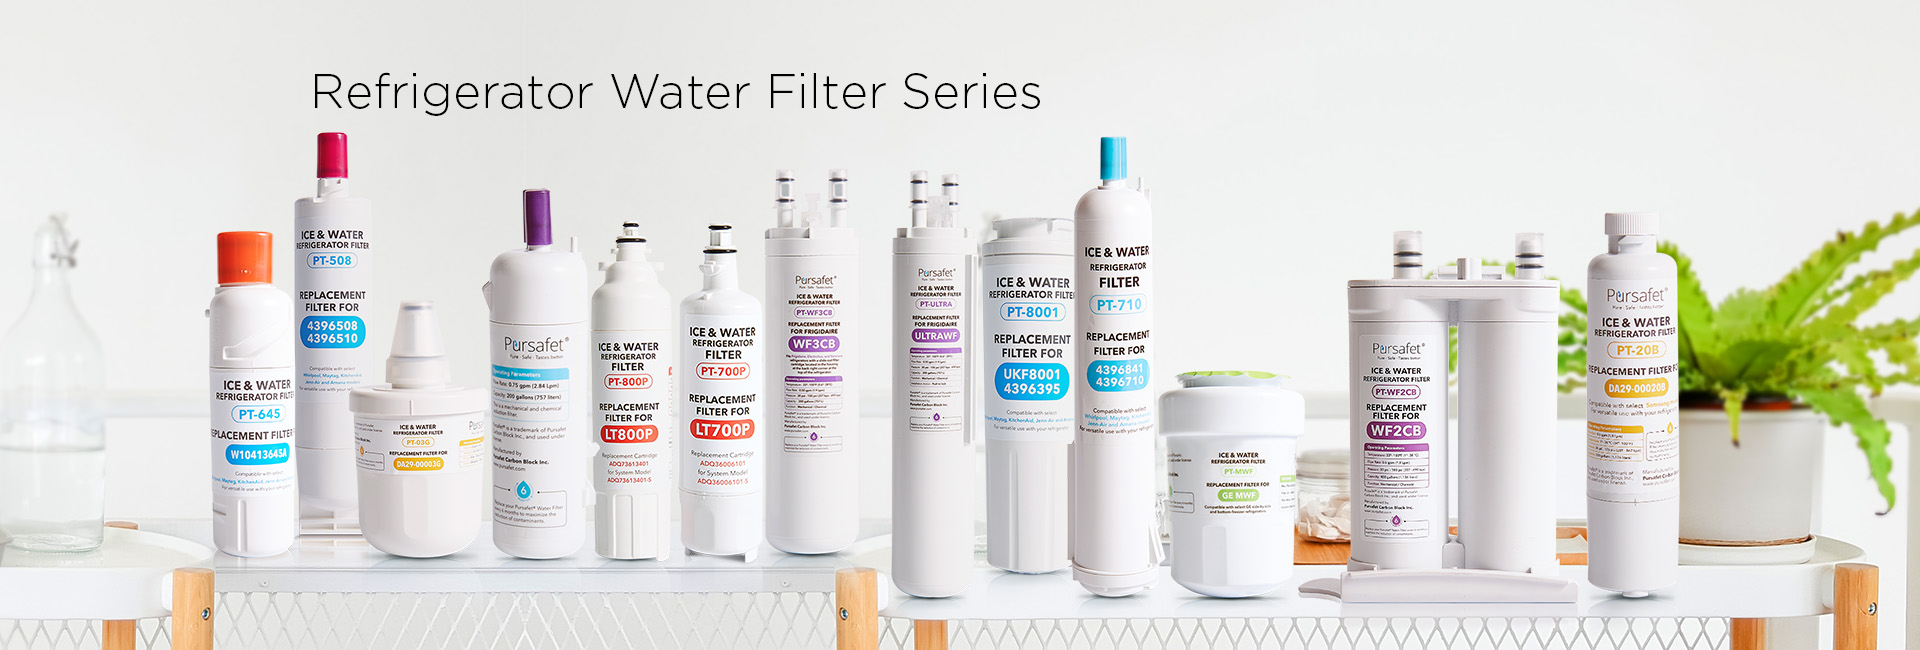 fridge water filter series